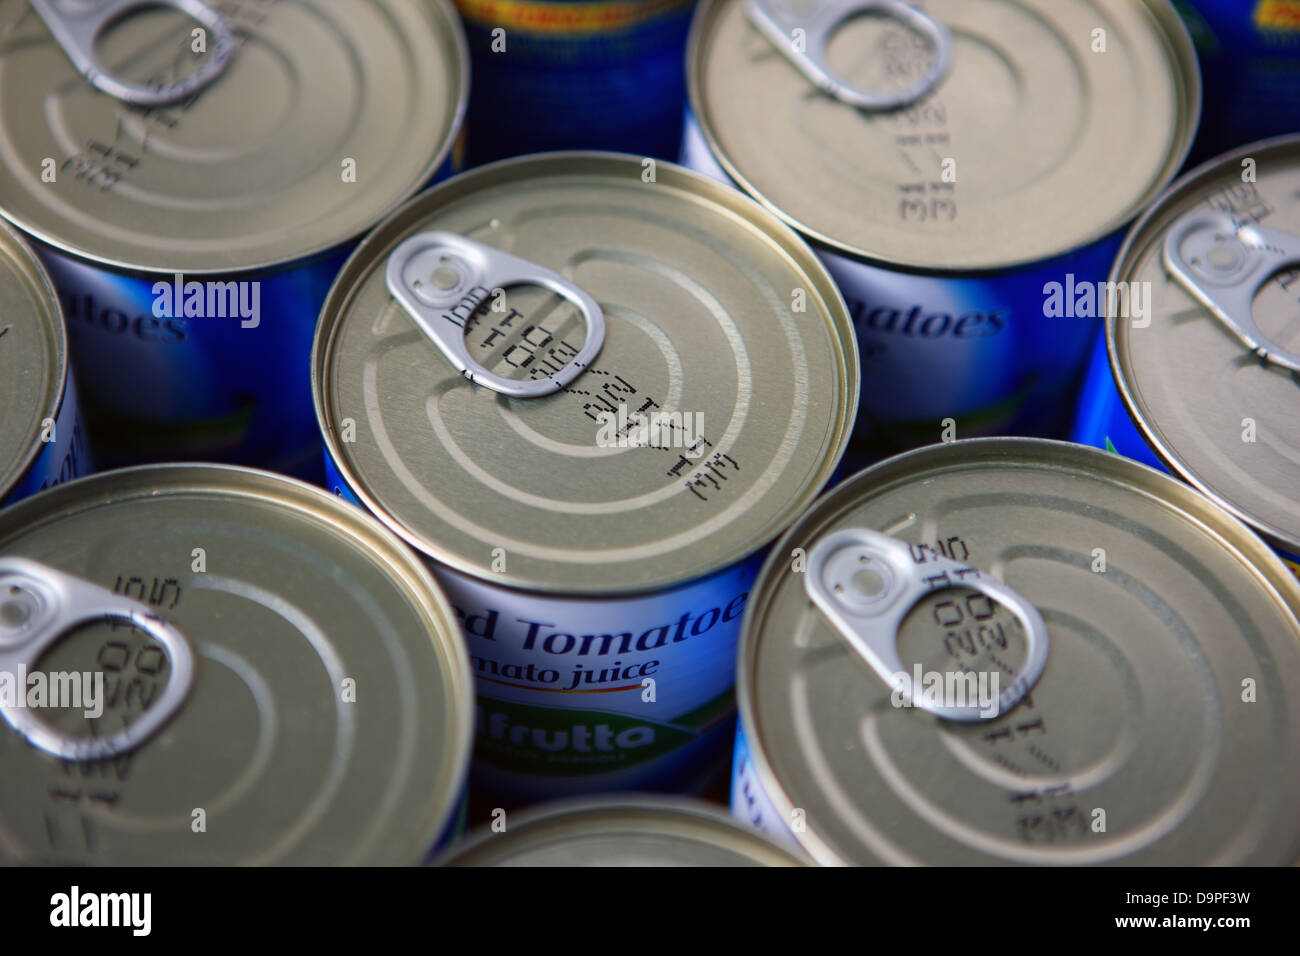 ring pull lids on tins of tomatoes - Stock Image